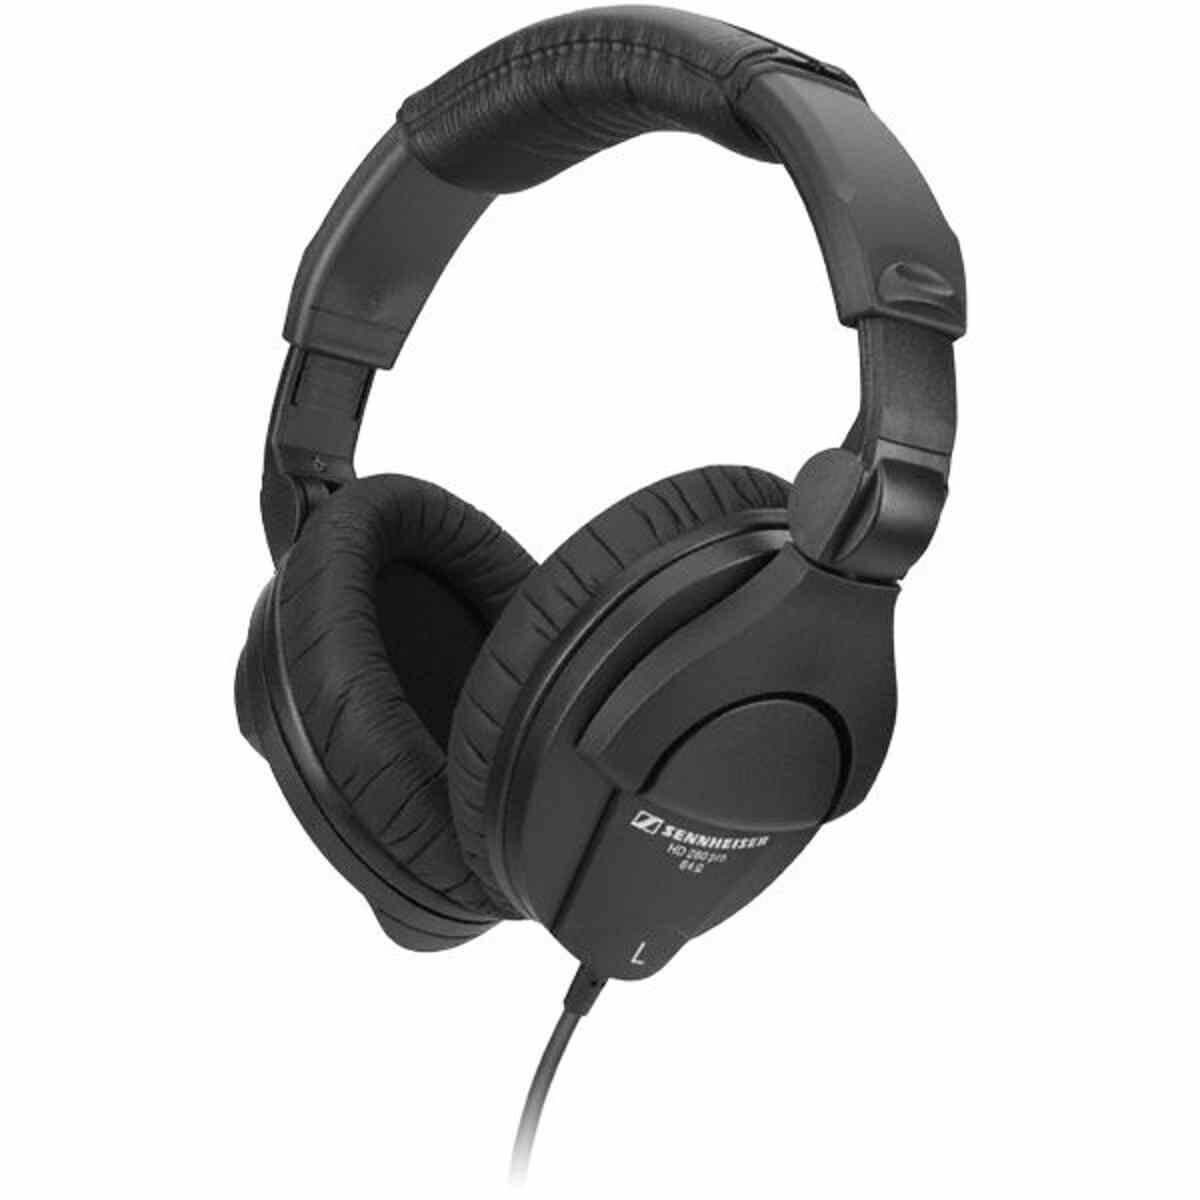 Sennheiser HD 280 Pro Circumaural Closed-Back Monitor Headphones Audio audio